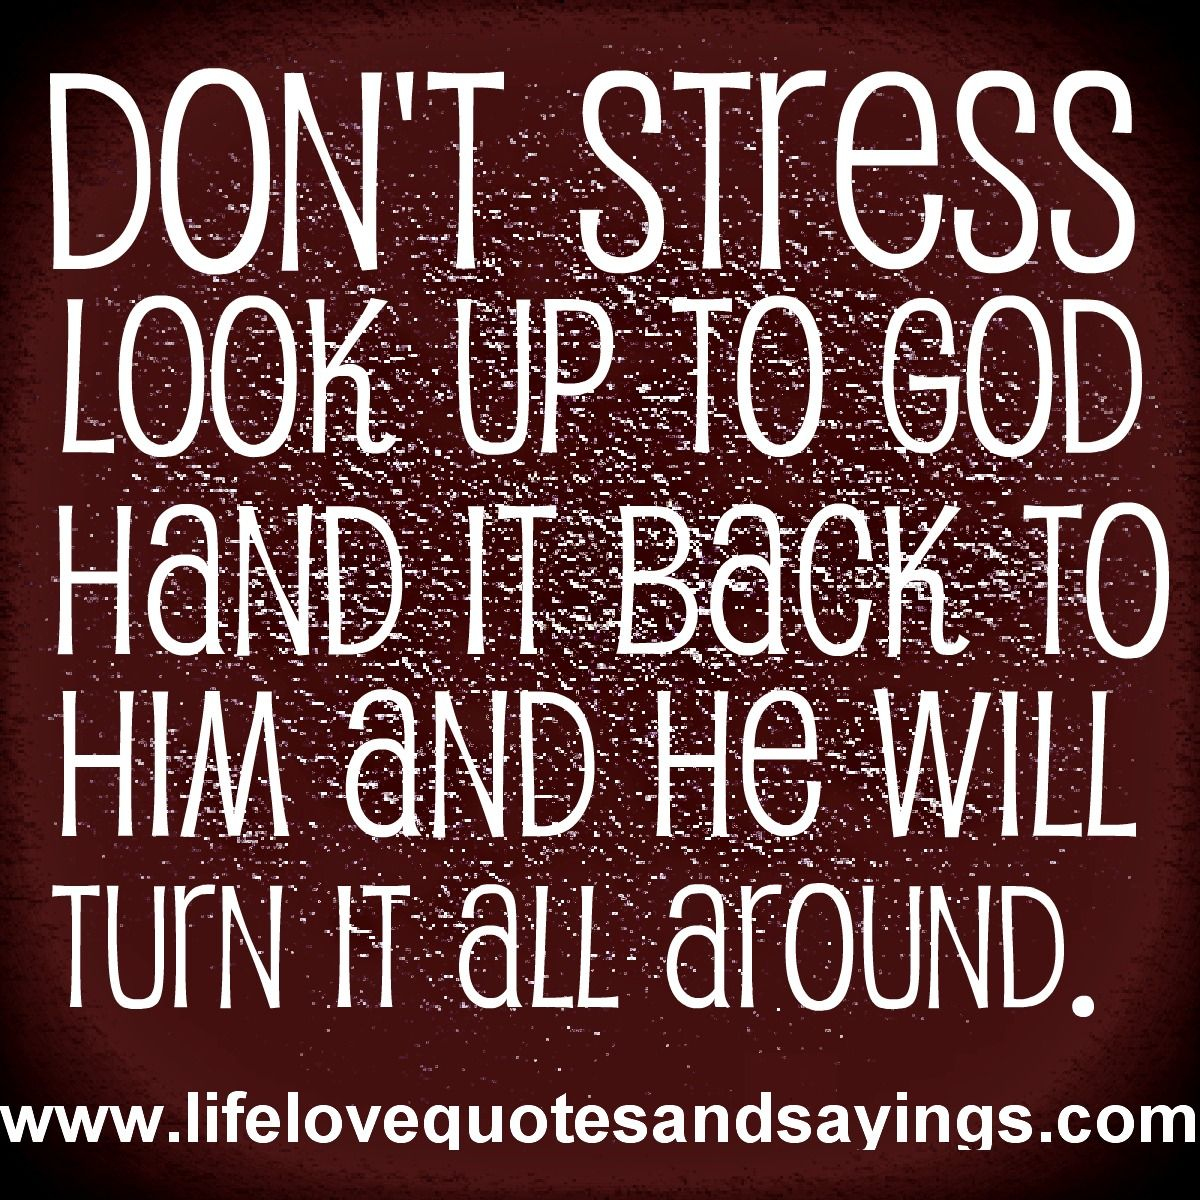 Life Is To Short To Worry About The Small Things God Quotes Short Gods Love Quotes Daily Inspiration Quotes